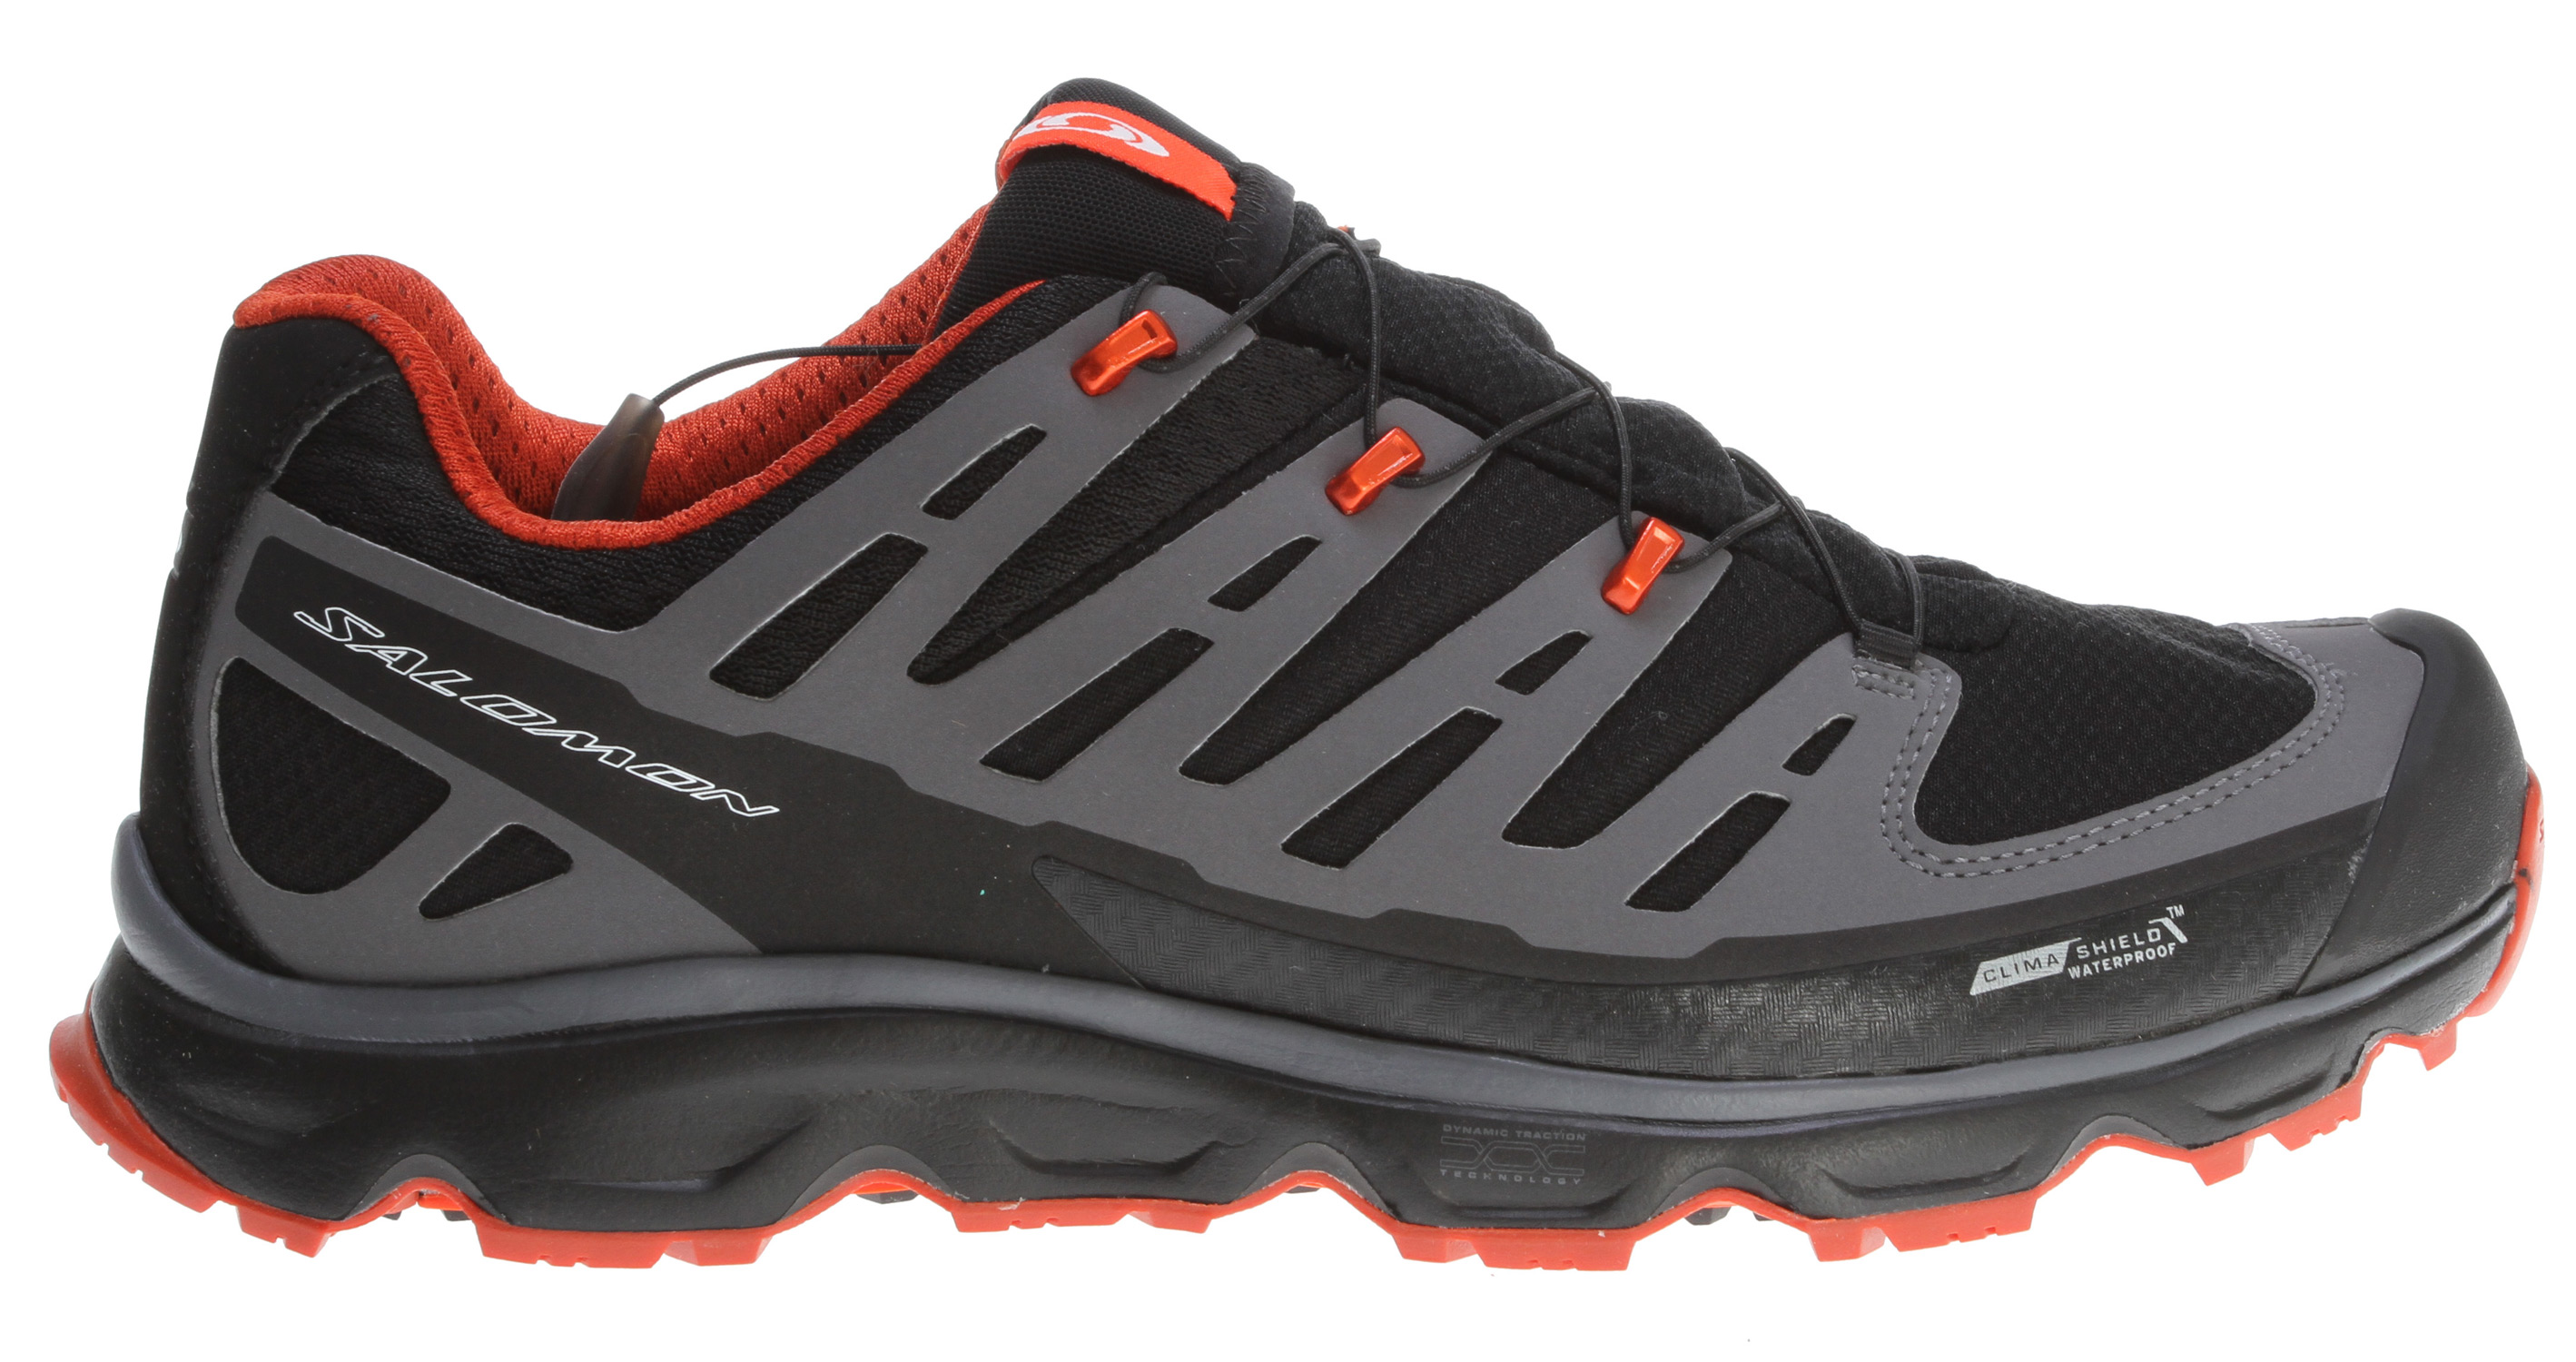 Camp and Hike Natural motion hiking shoe for people who take an athletic approach to the mountains. Synapse CS WP is a very breathable waterproof solution for year-round fast hiking.Key Features of the Salomon Synapse CS Hiking Shoes: Weight: 12.3oz Heel foam Water resistant textile Seamless Sensifit Lace pocket Sensifit Gusseted tongue Protective rubber toe cap Mud guard Quicklace Climashield waterproof Textile Lining 360 degrees Waterproof bootie construction Non marking Contagrip OS Tendon Dynamic traction Molded EVA sockliner EVA shaped footbed Ortholite OS Muscle midsole Injected EVA midsole Midsole height: 24mm/14mm - $97.95